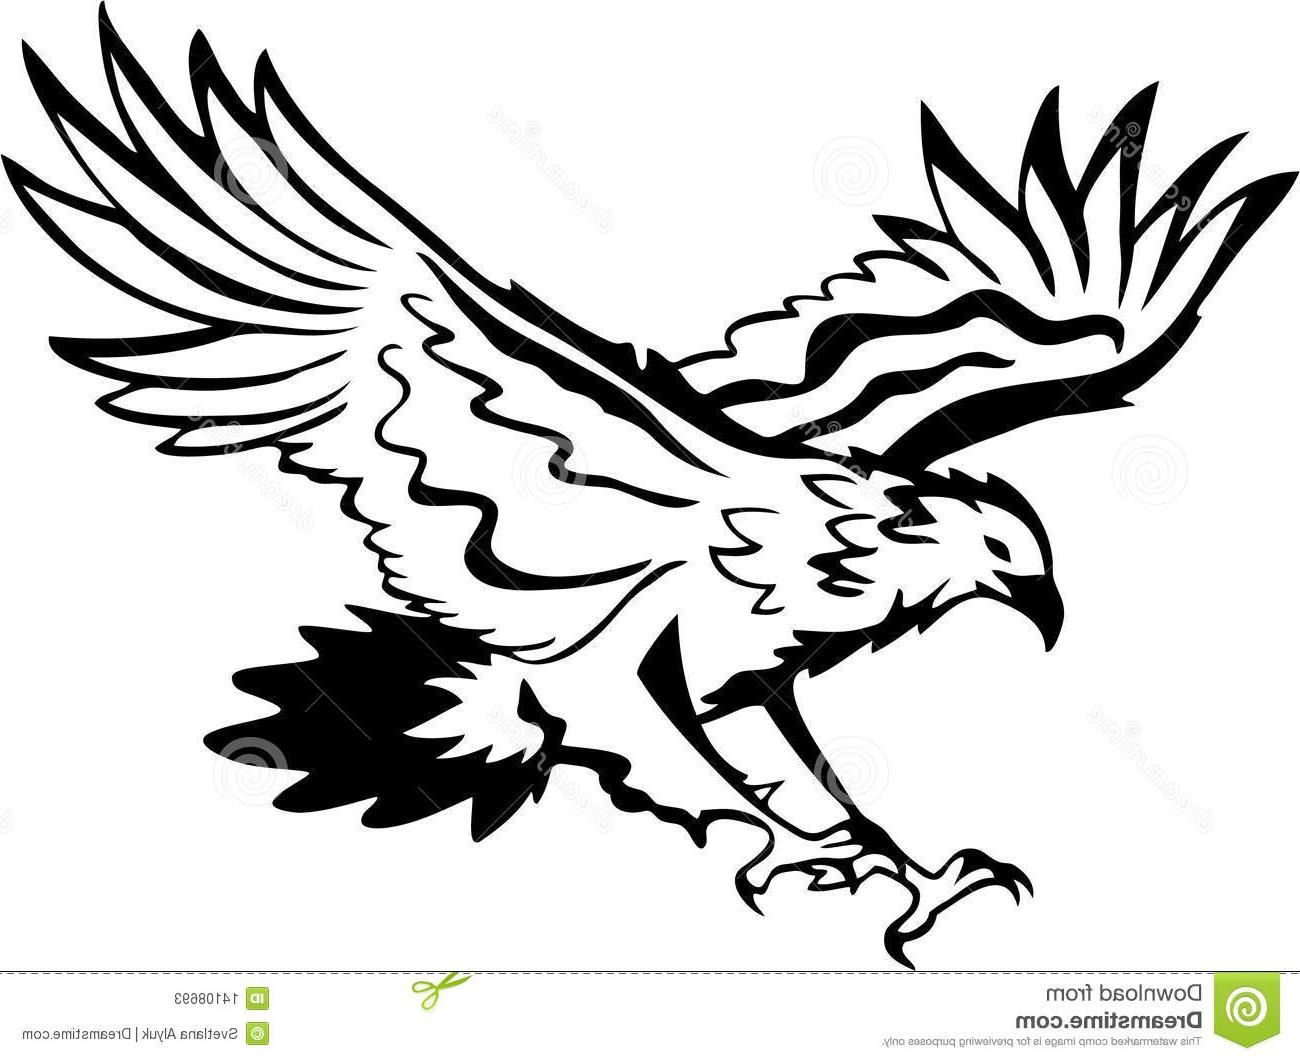 hight resolution of eagle clip art black and white best free eagle flying clipart black and white vector cdr